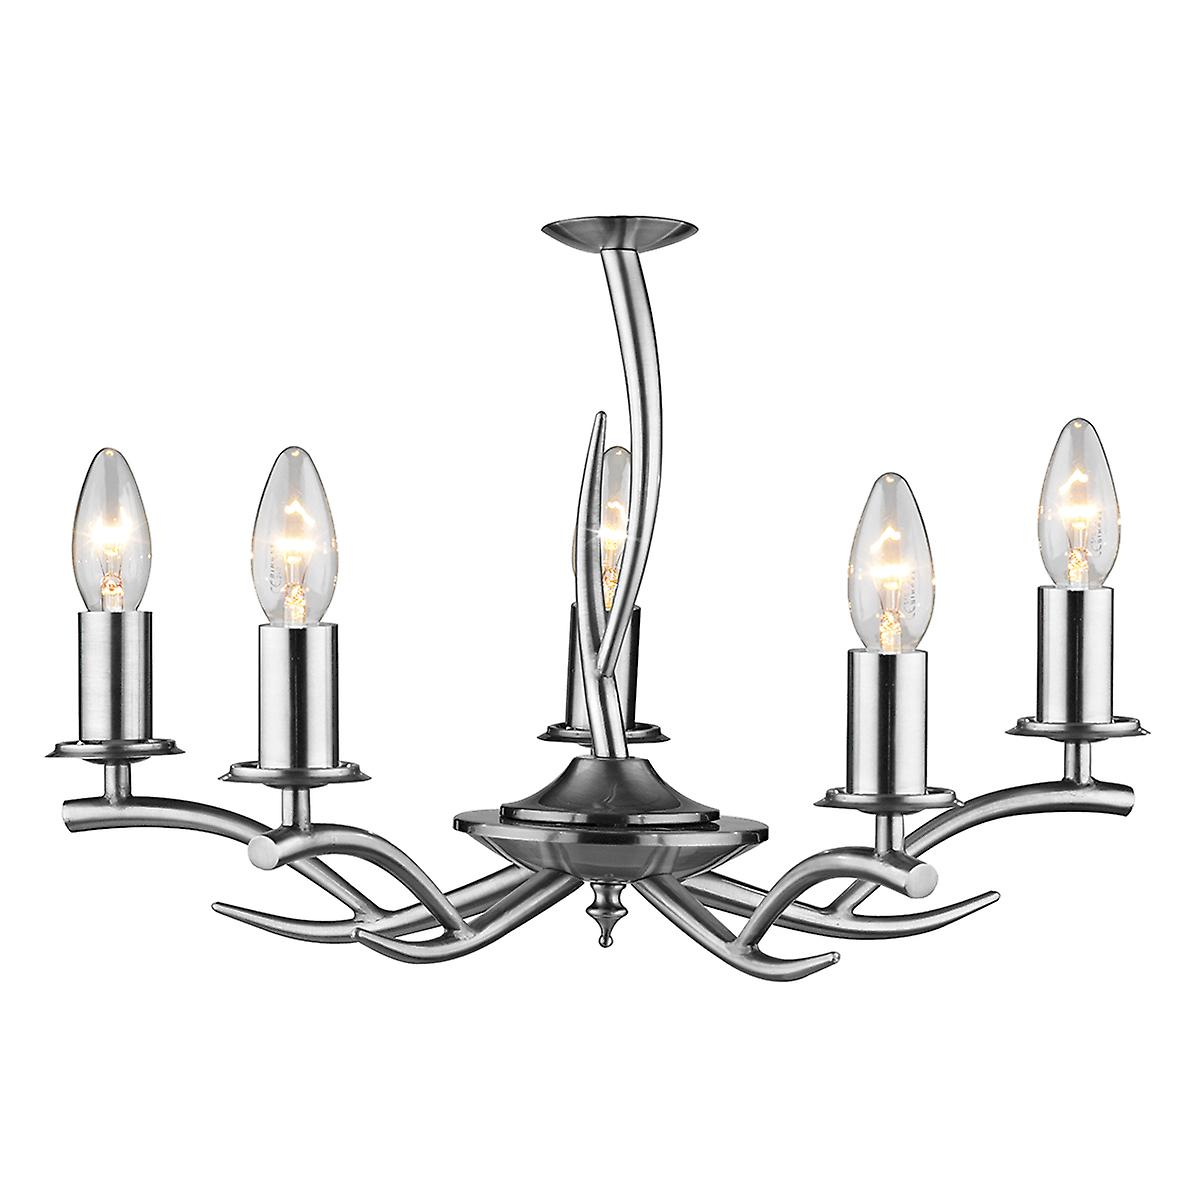 Dar ELK0546 Elka Modern Chrome 5 Arm Double Insulated Ceiling Pendant